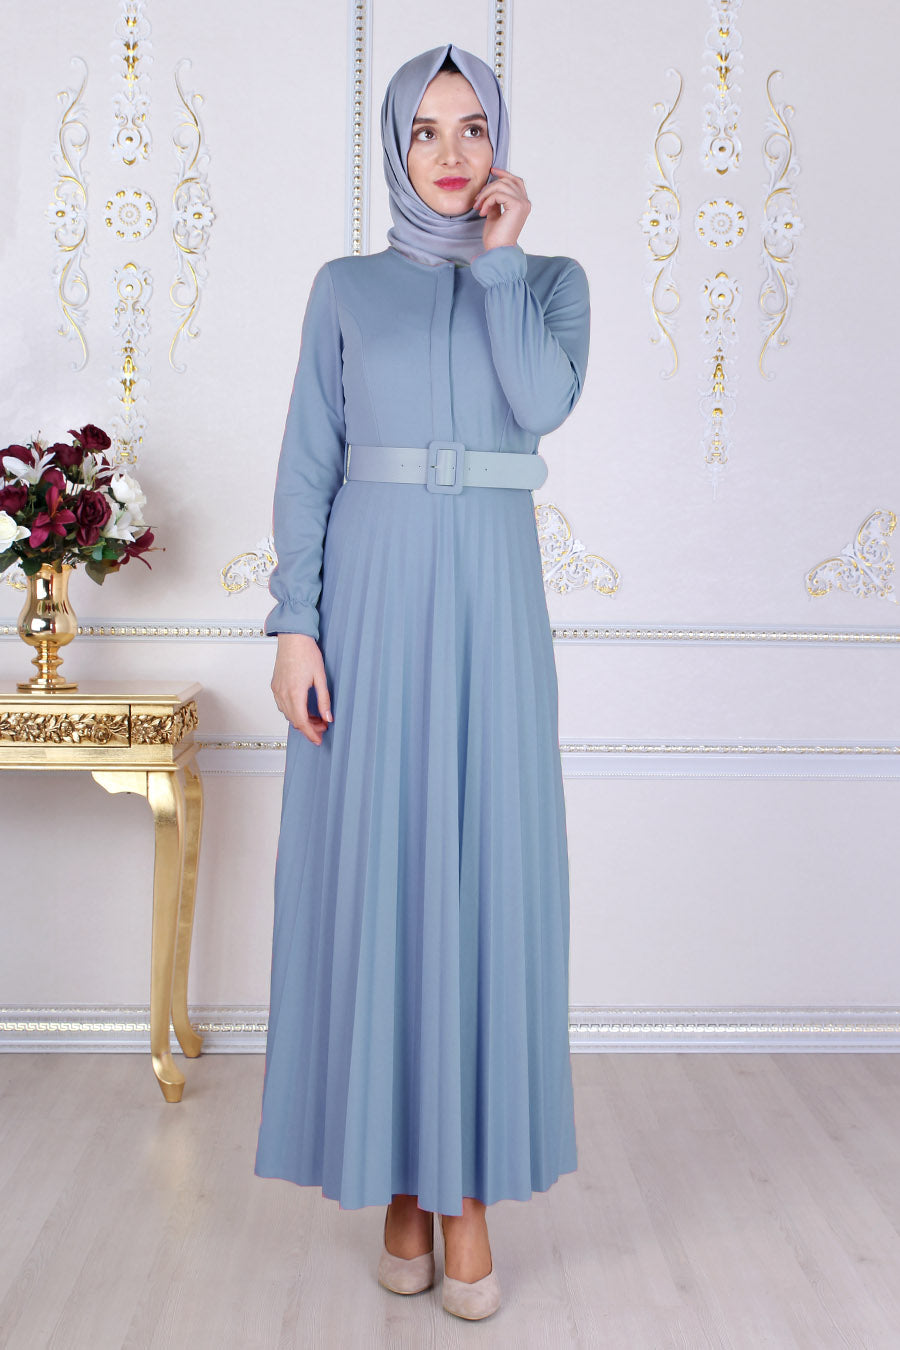 Powder Blue Abaya With Belt - Buy Abaya Online